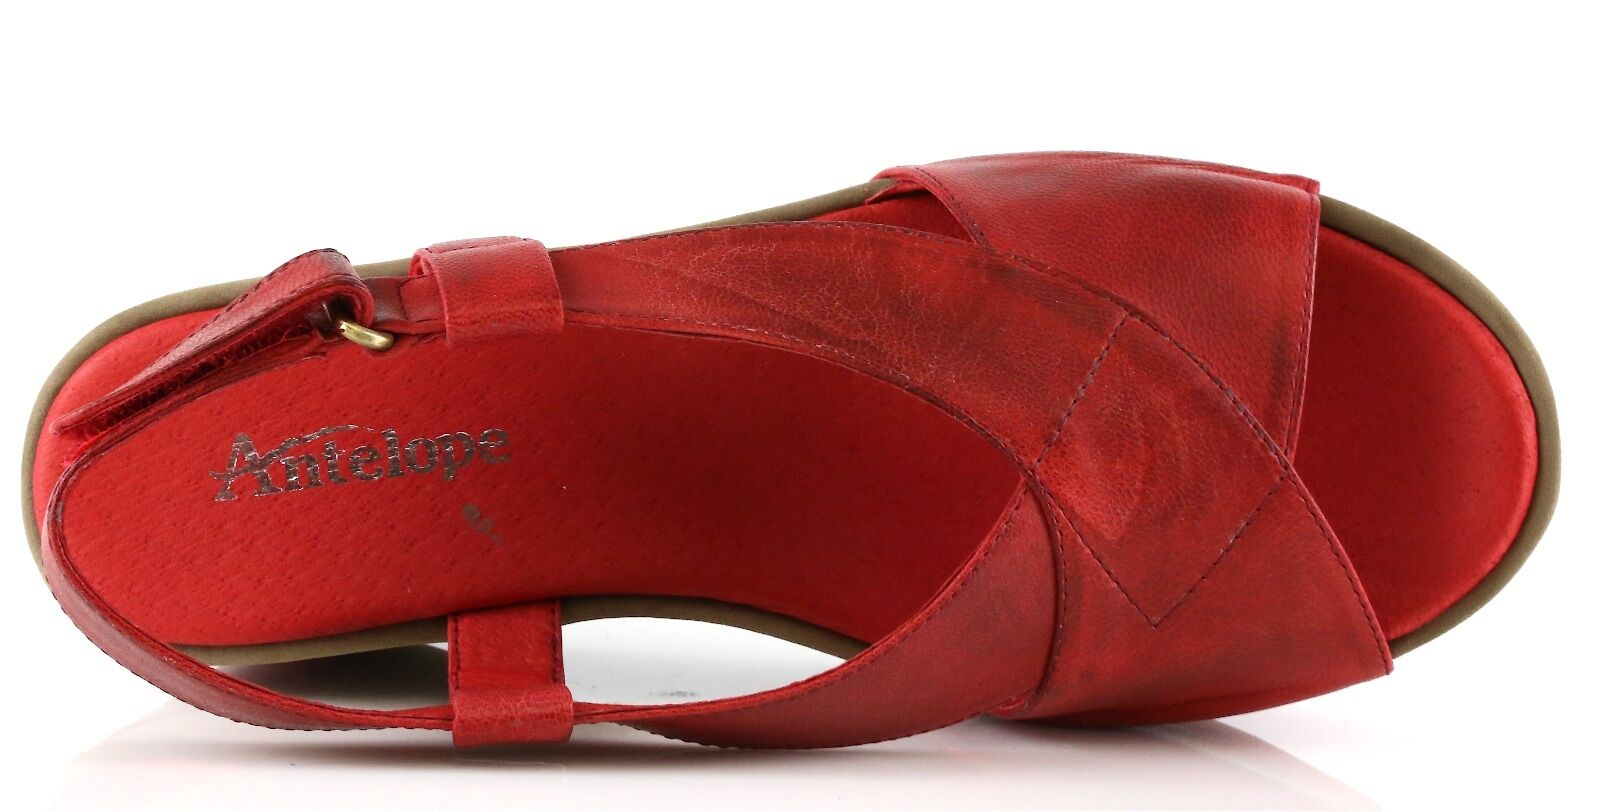 Antelope Donna's rosso Leather Wedge Wedge Wedge Sandals 8969 Dimensione 41 EU NEW  f3e2b8